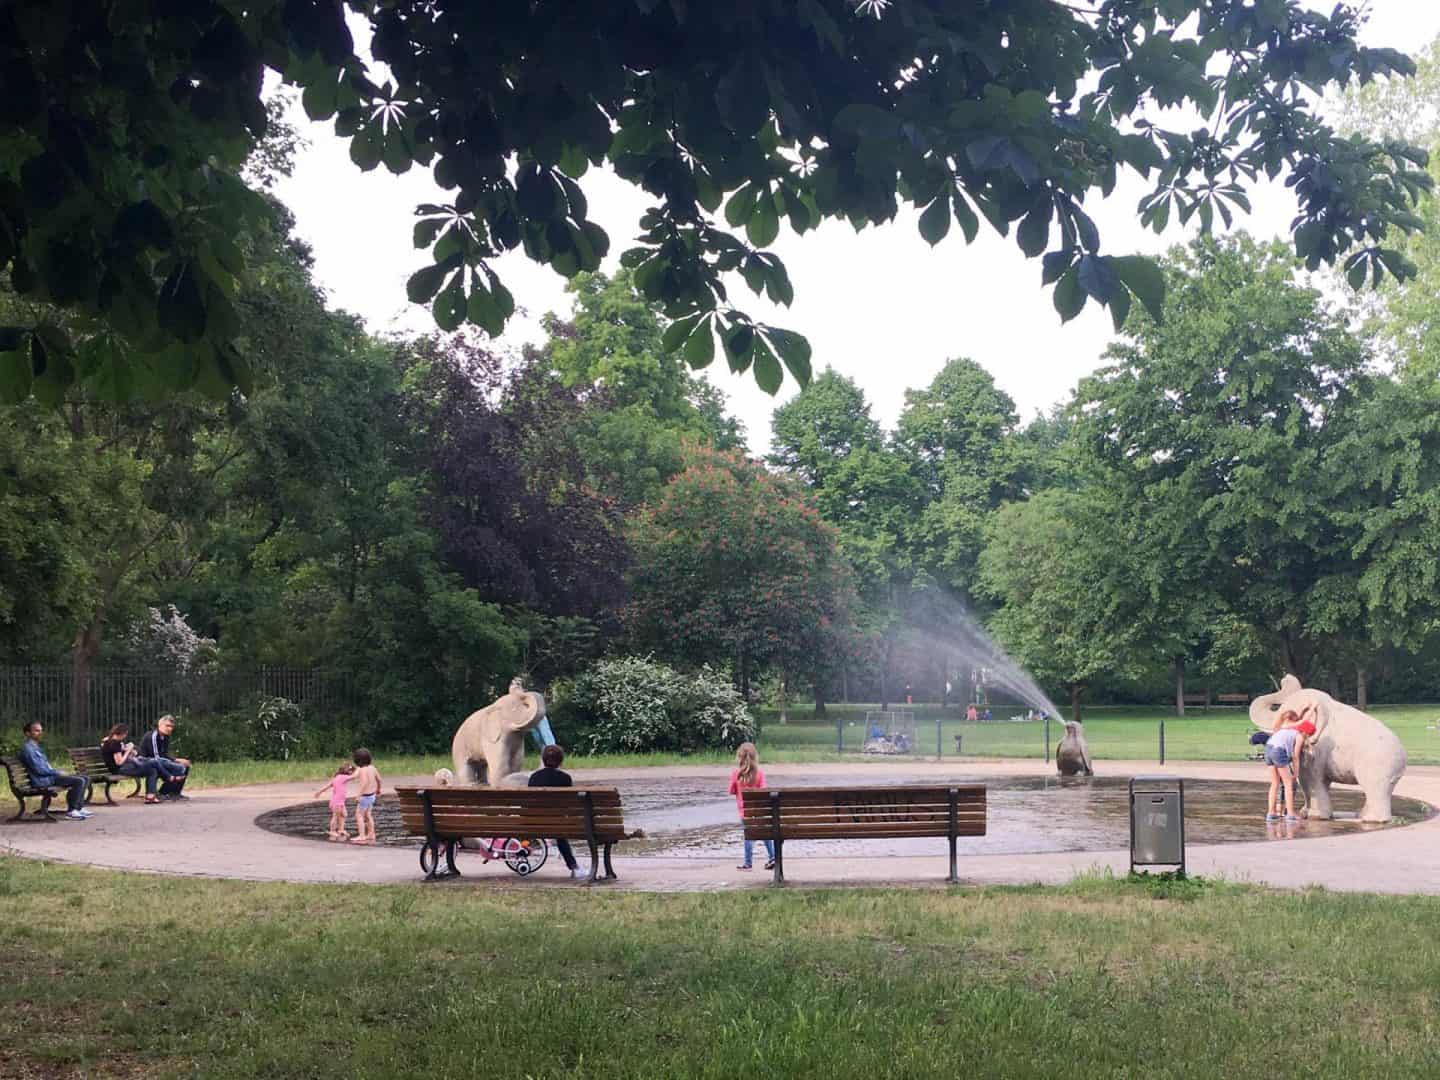 Family travel: Awesome city parks and playgrounds in Europe